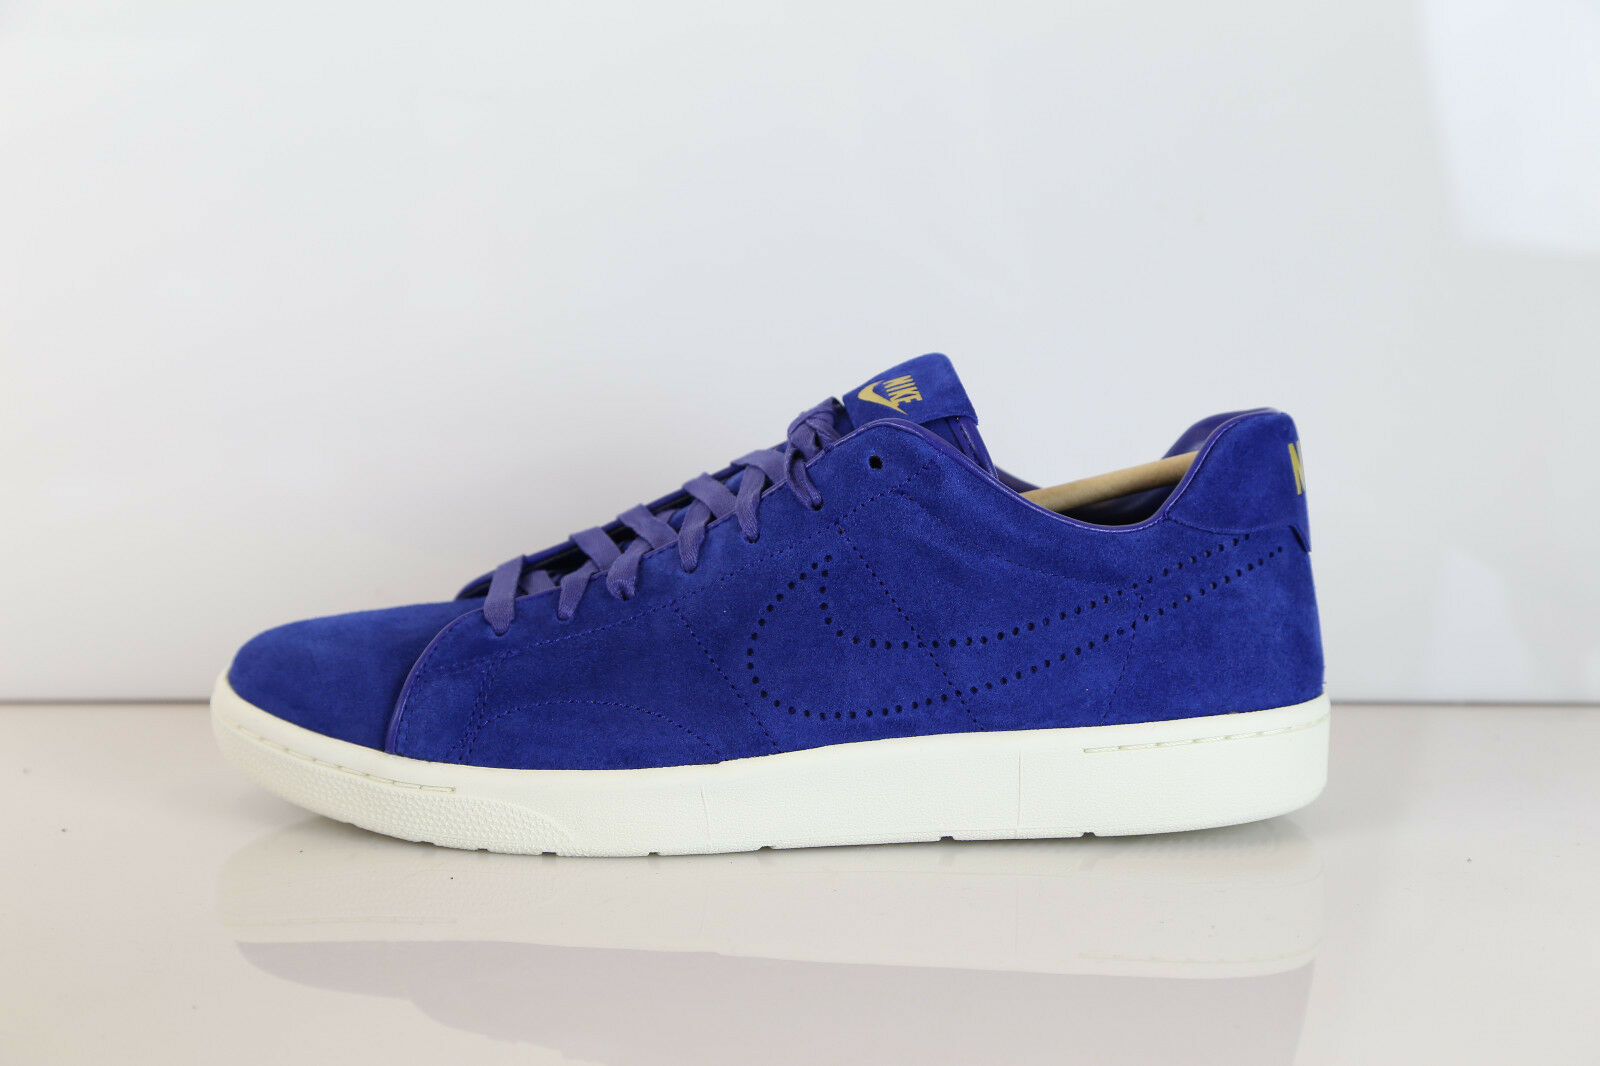 Nike Tennis Classic Premium SP Deep Royal 621357 447 8-12 4